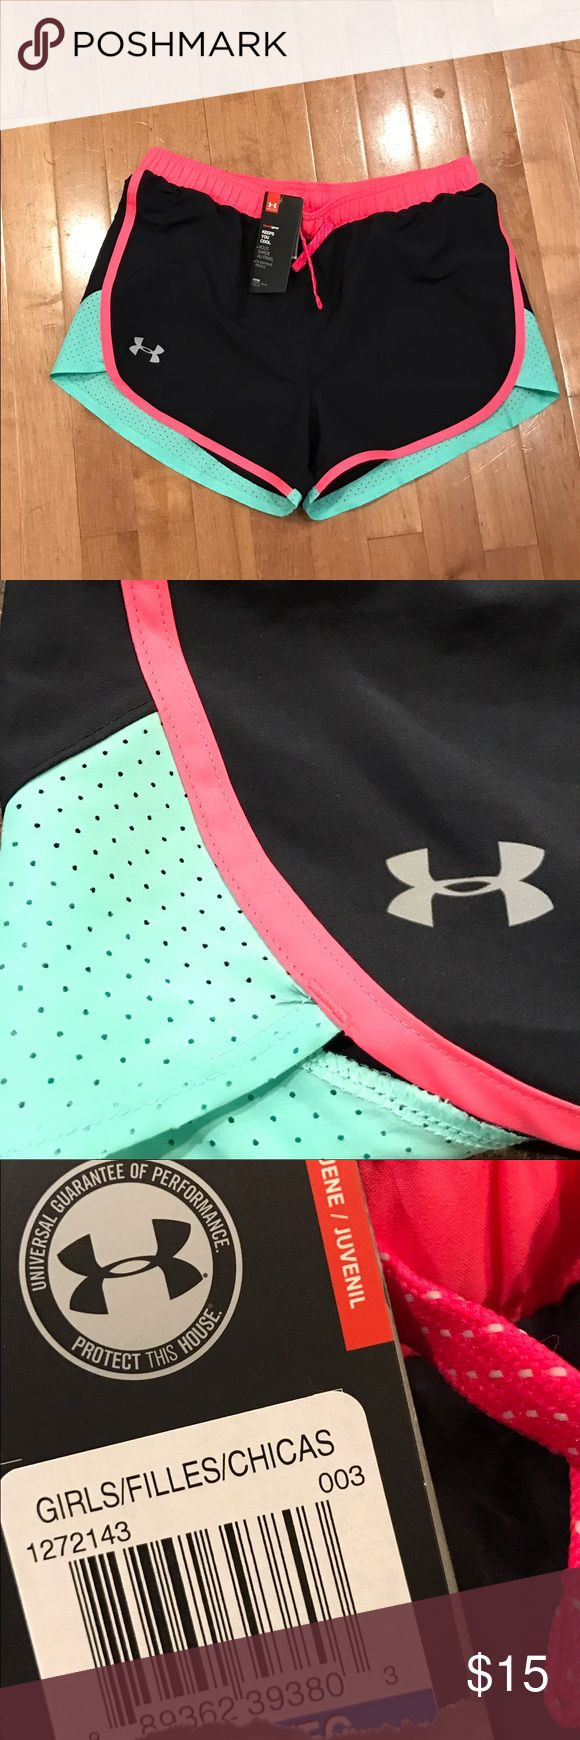 Girls Under Armour shorts Cute and colorful Under Armour shorts are NWT in a black with mint green and pink accents. Youth XL. Under Armour Bottoms Shorts